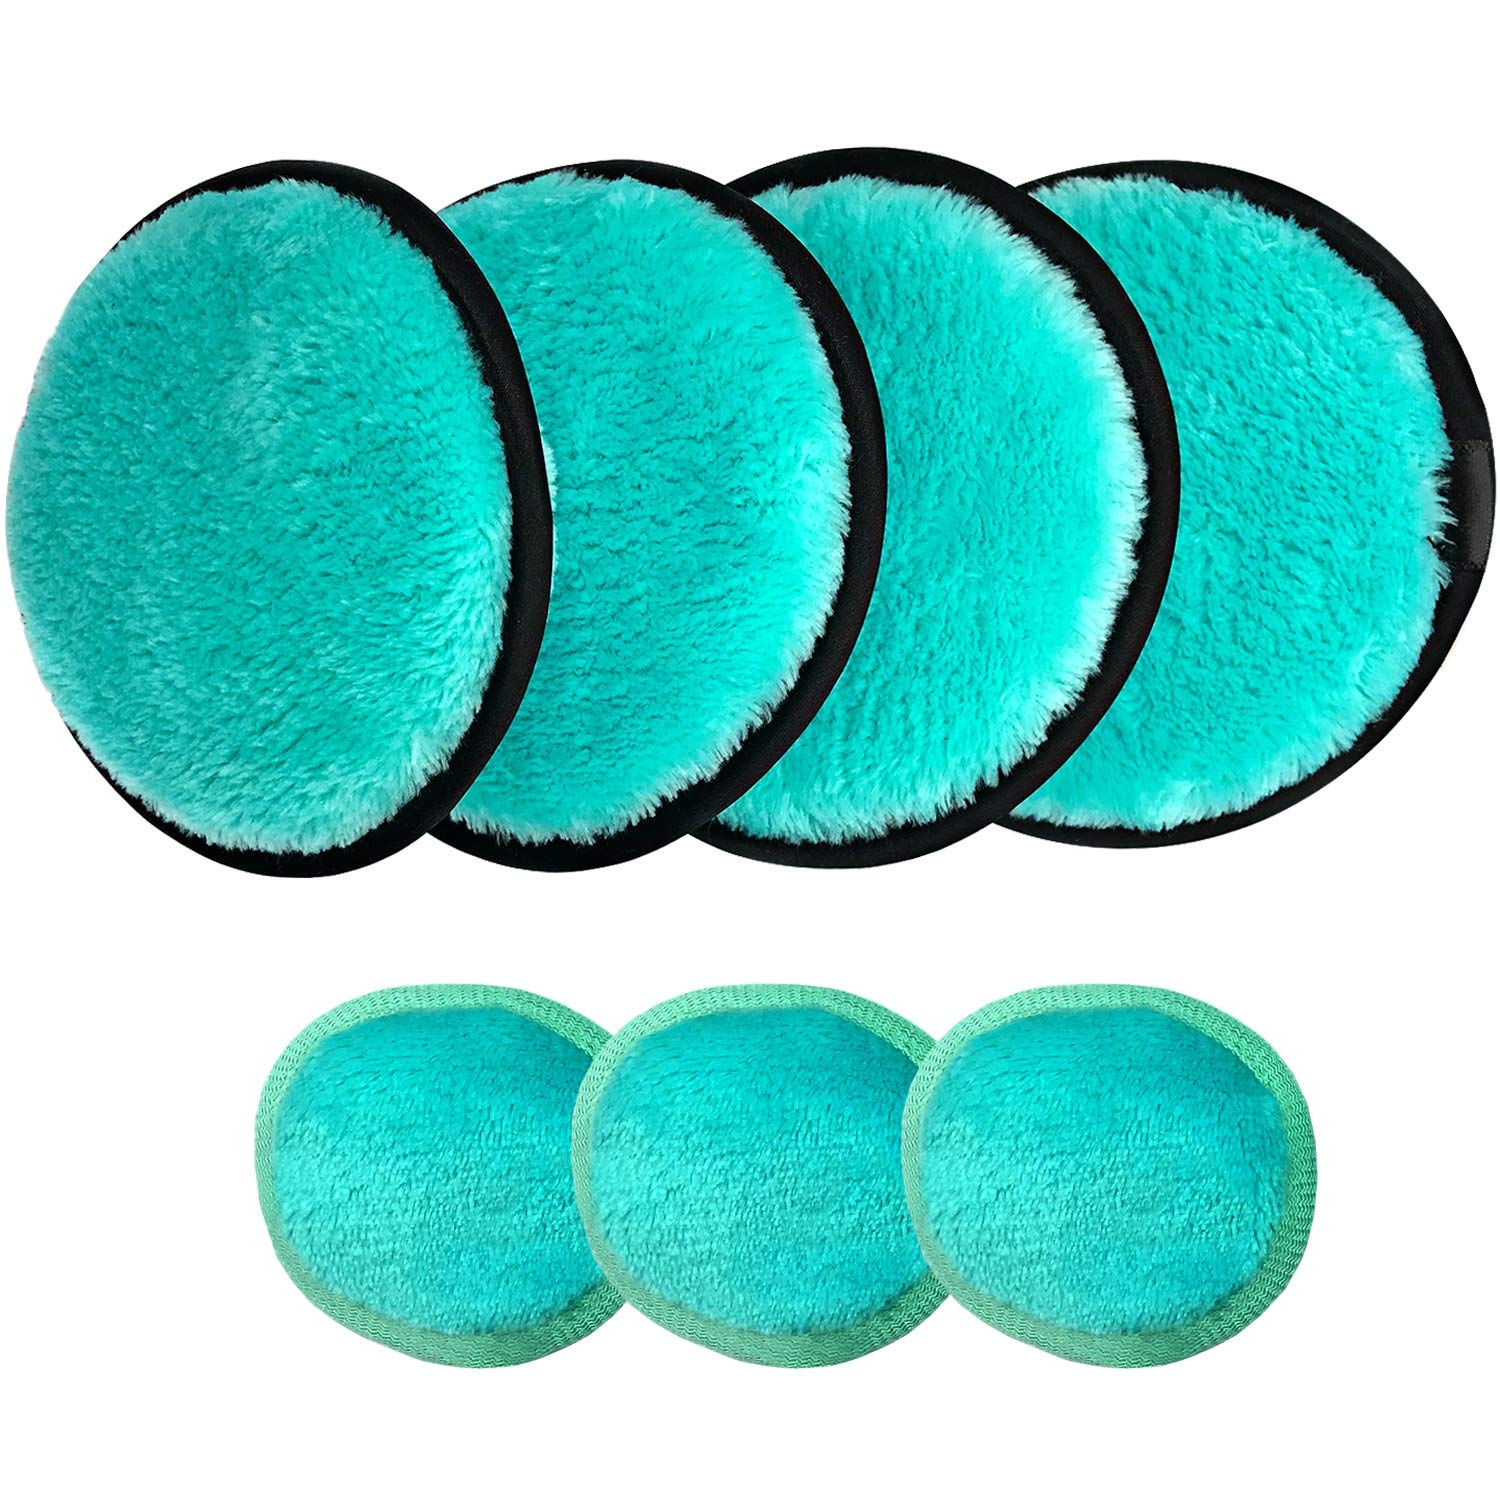 MARY LAVENDER Multifunctional Makeup Remover Pads for Face Eyes 7 Pack, Washable Reusable Face Cleansing Wipes Pads, Makeup Removing Sponges, Exfoliating Massage Face